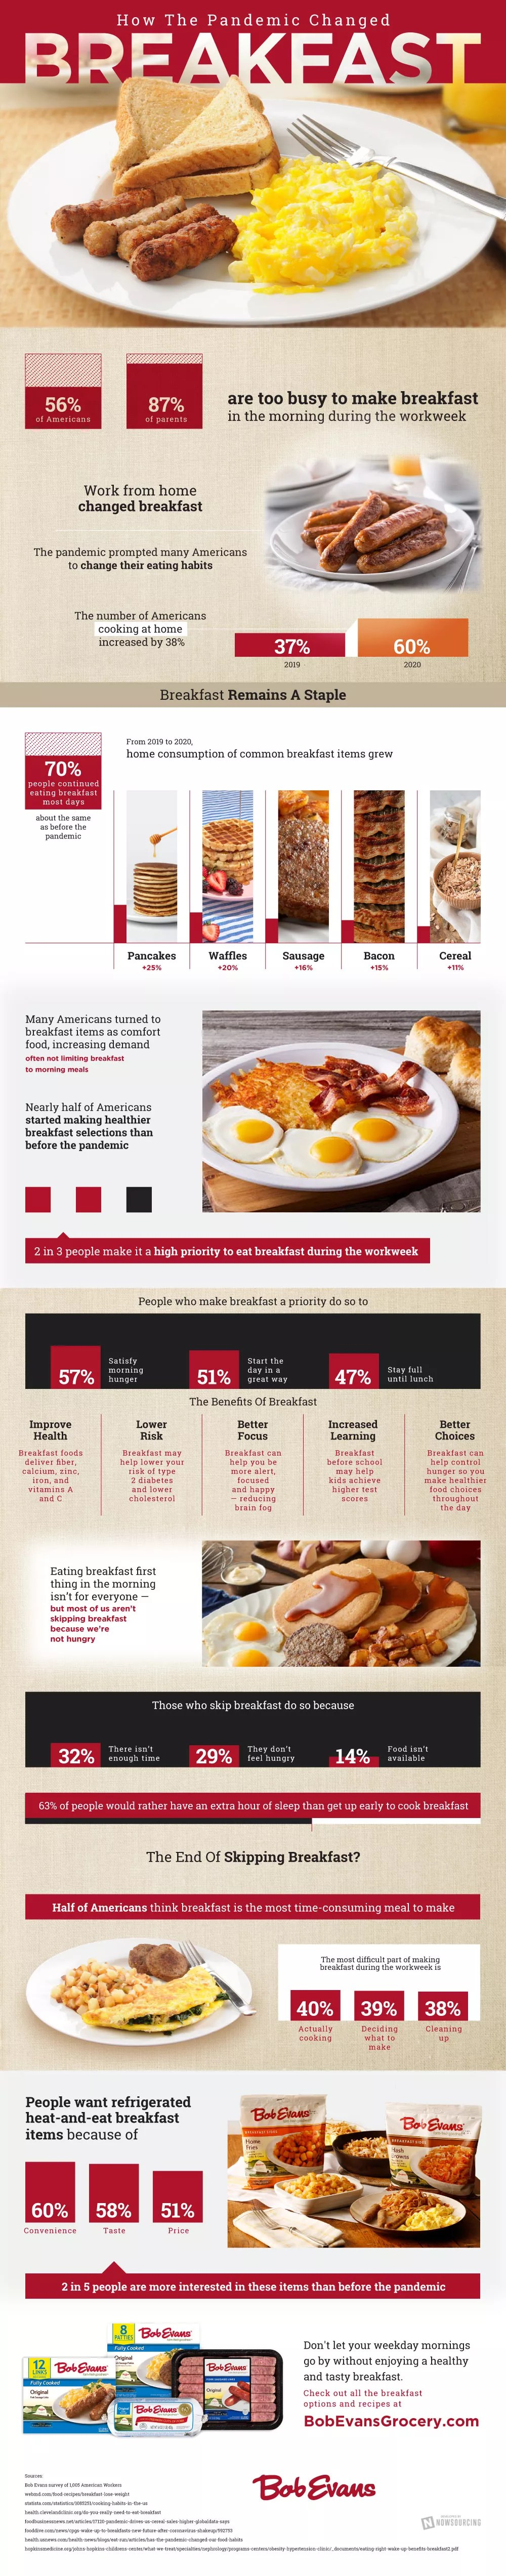 How The Pandemic Changed American's Breakfast Habits